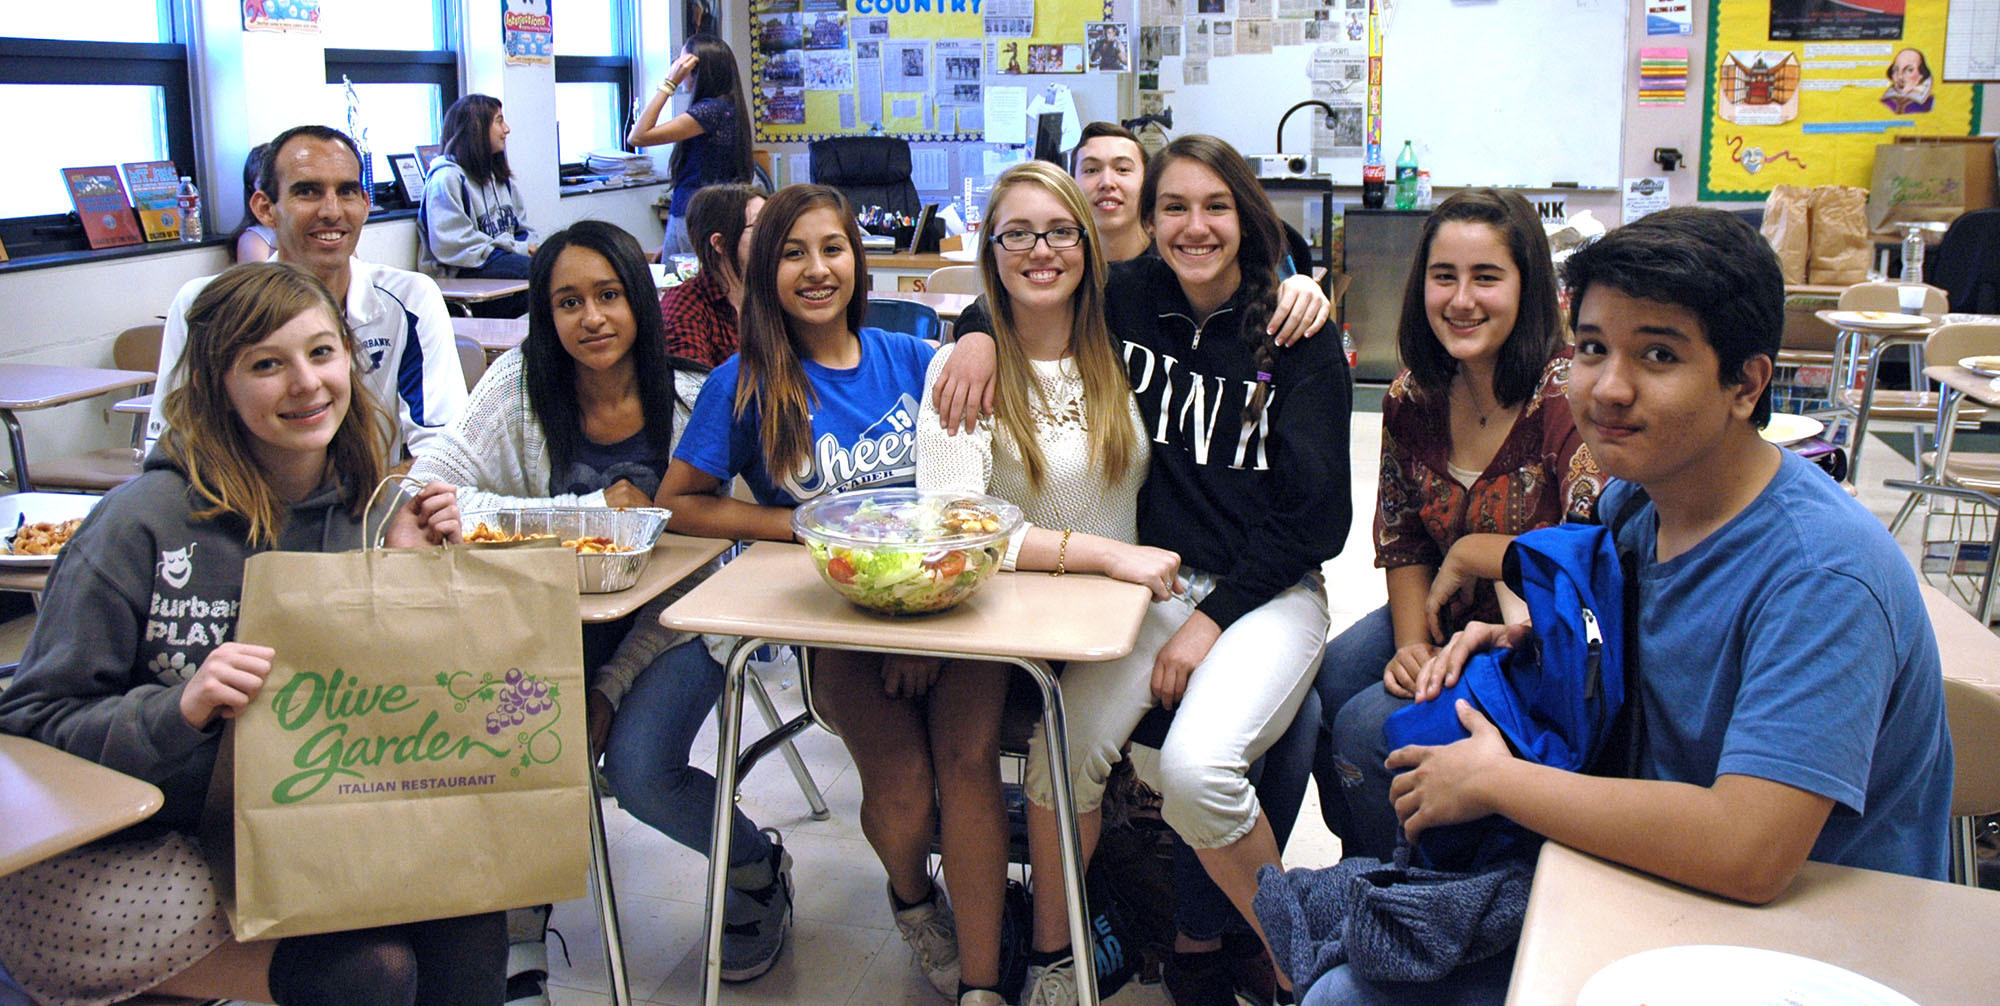 A few of the students who raised the most money for the Leukemia and Lymphoma Society are, from left, Rebekah Maynes, teacher Trevor Marca, Sumani Ojo, Amanda Camacho, Mary Tebbe, Natalie Seremi, Shauna Hosepo and Leonard Wee.